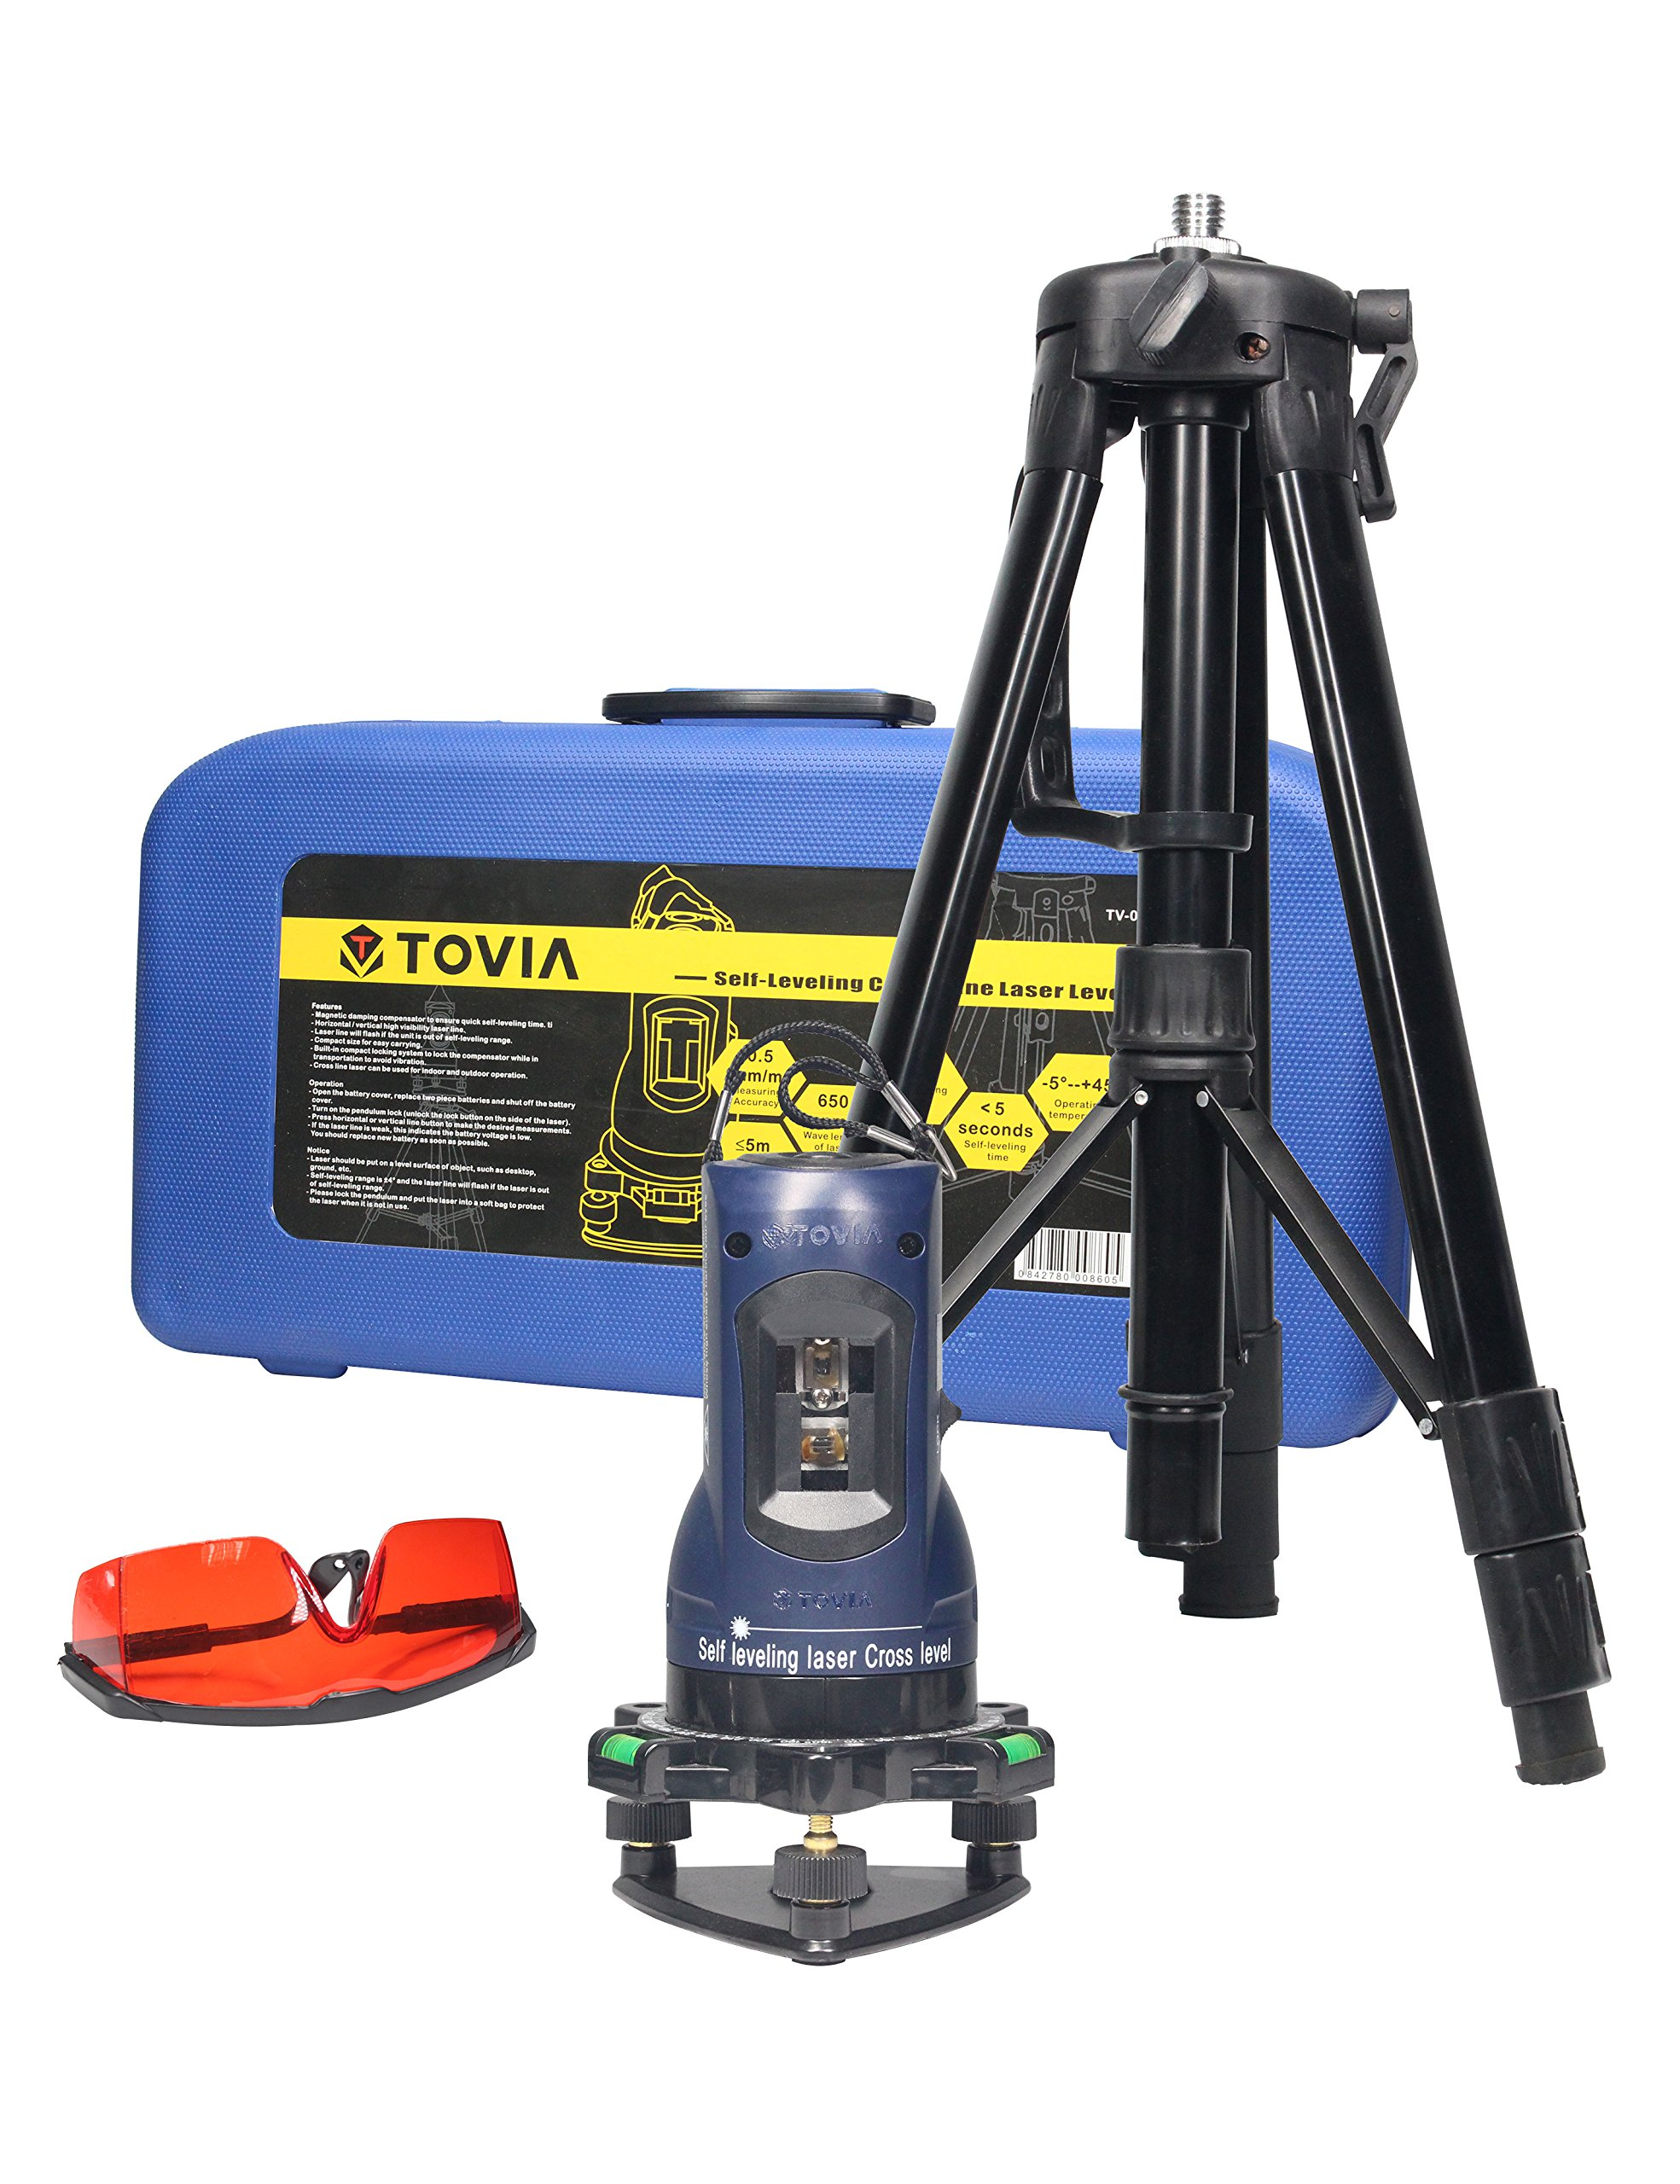 TOVIA Self-Leveling Cross Line Laser Level Kit,Tripod Tool kit with Horizontal Vertical layout(NOT INCLUDED 2AA BATTERY)